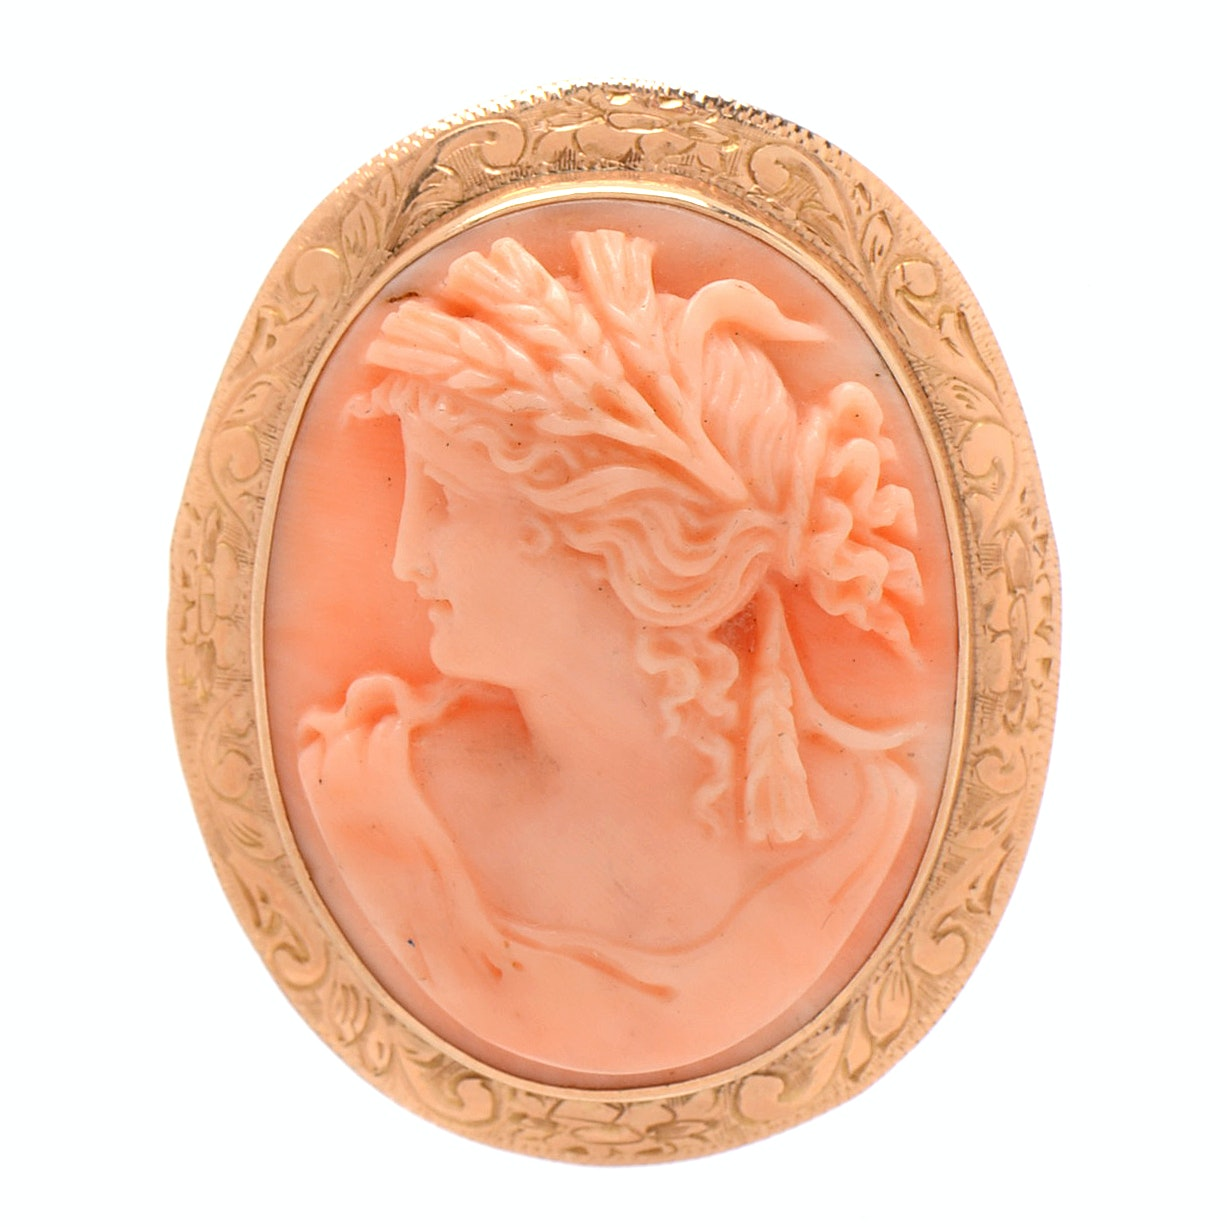 Vintage 1920s 14K Yellow Gold Pale Pink Coral Cameo